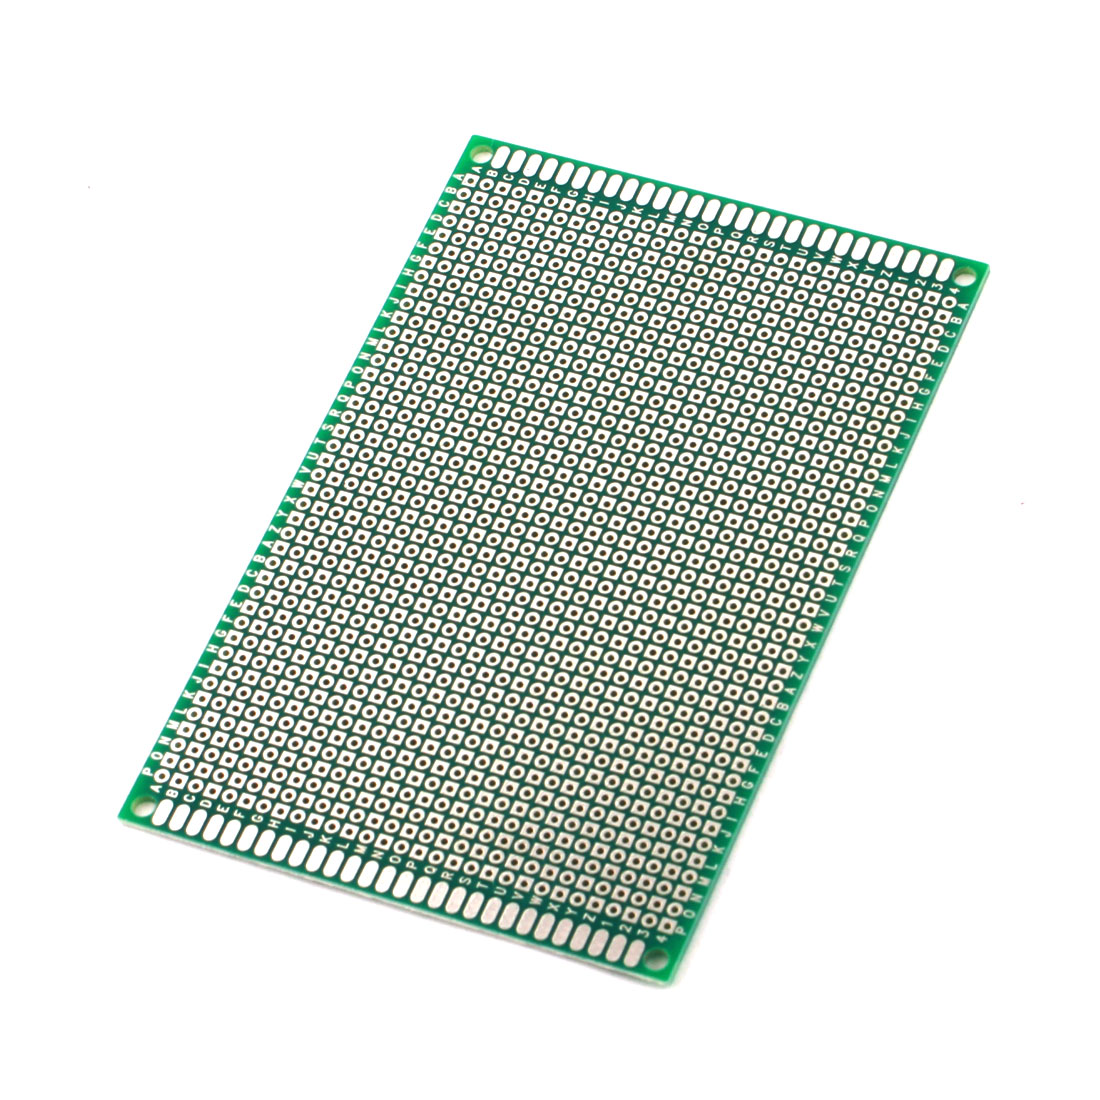 12cm x 8cm 2.54mm Pitch Two Side Tin Plated Universal Prototype PCB Printed Circuit Board